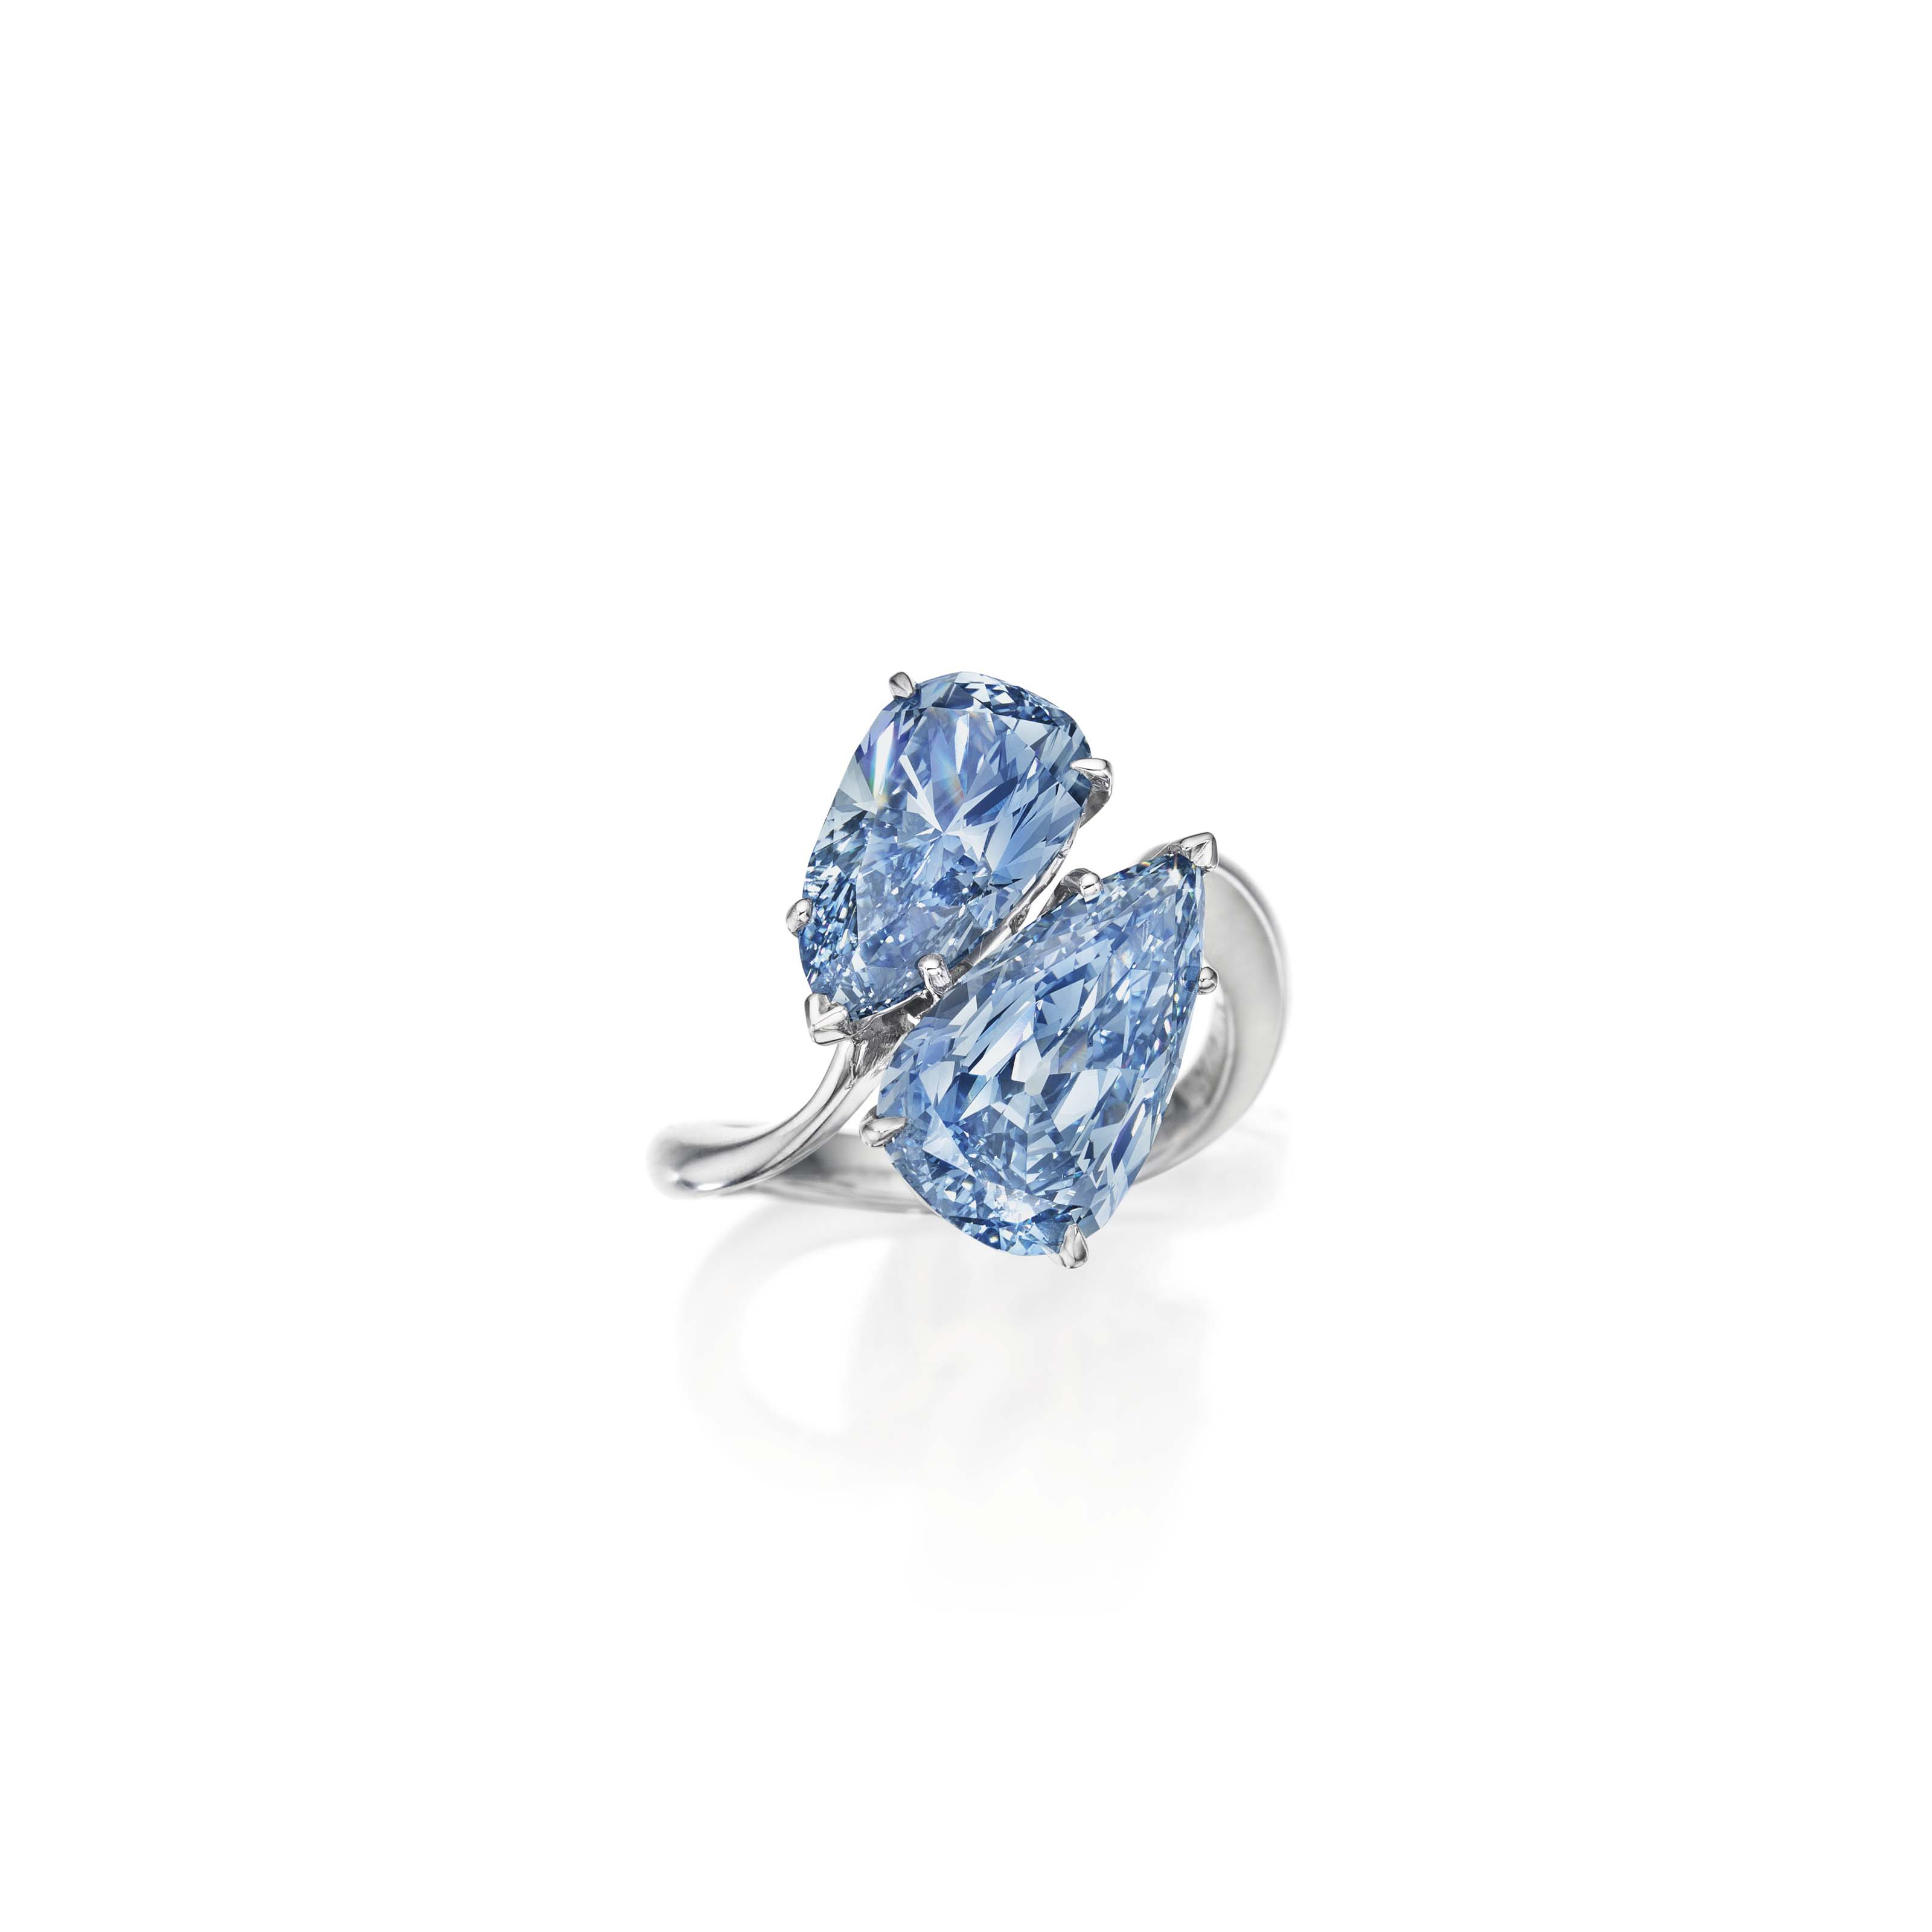 A SUPERB TWIN-STONE COLORED DIAMOND RING, BY GRAFF